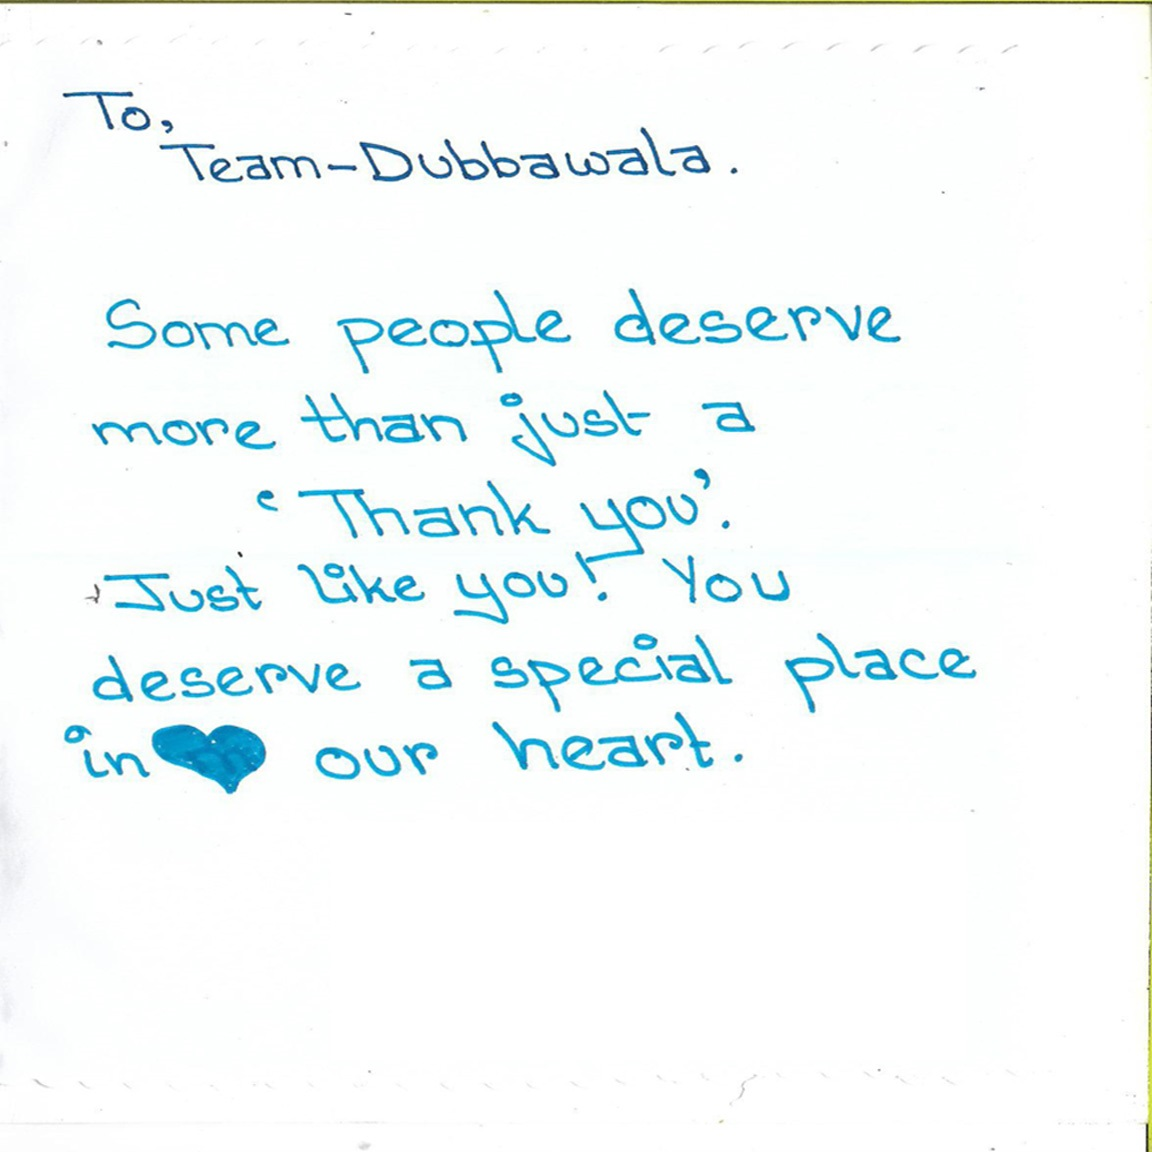 A Note of Thank You from a group of NGO Children after they liked the food of Dubbawala on 8/01/2019